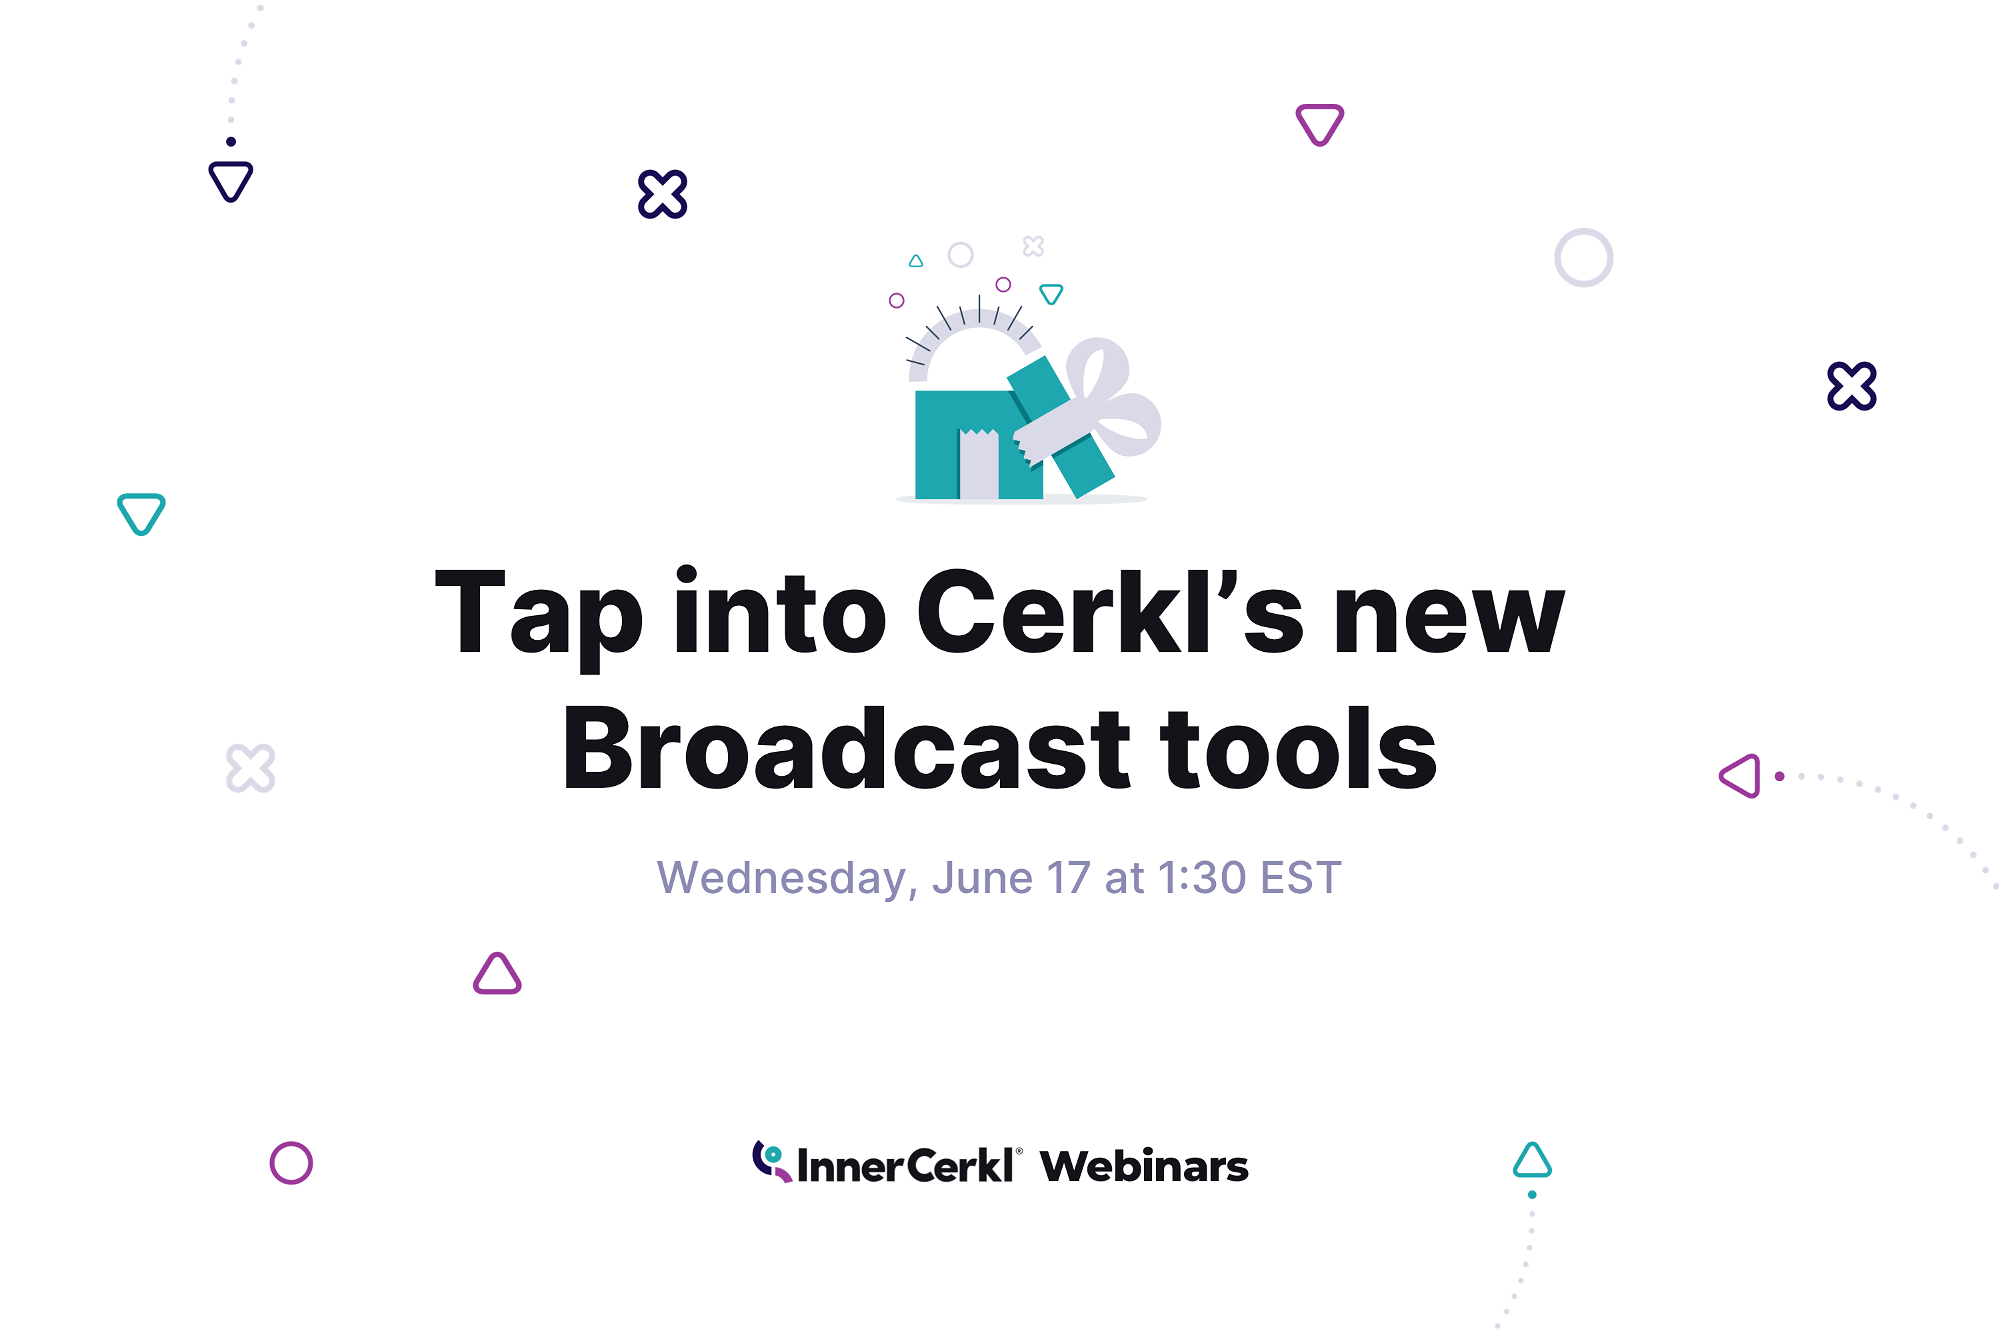 Tap into Cerkl's new Broadcast tools